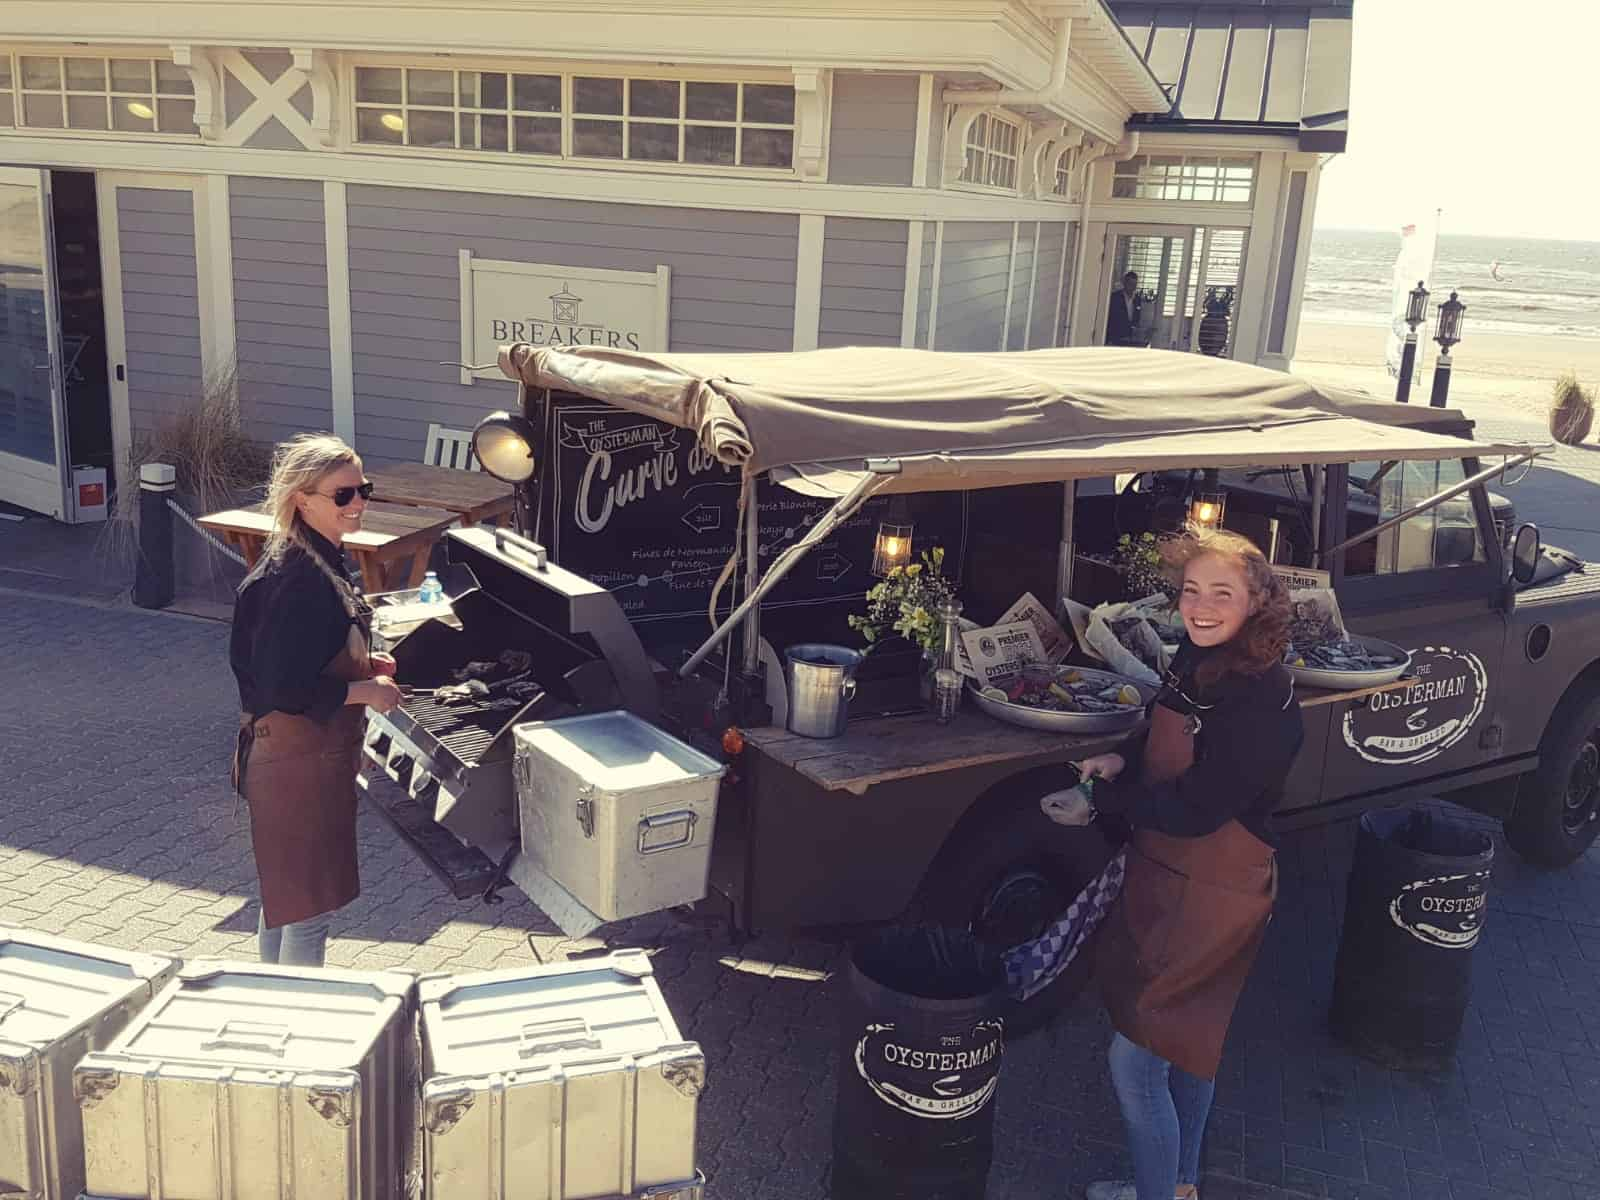 Foodtruck The Oysterman